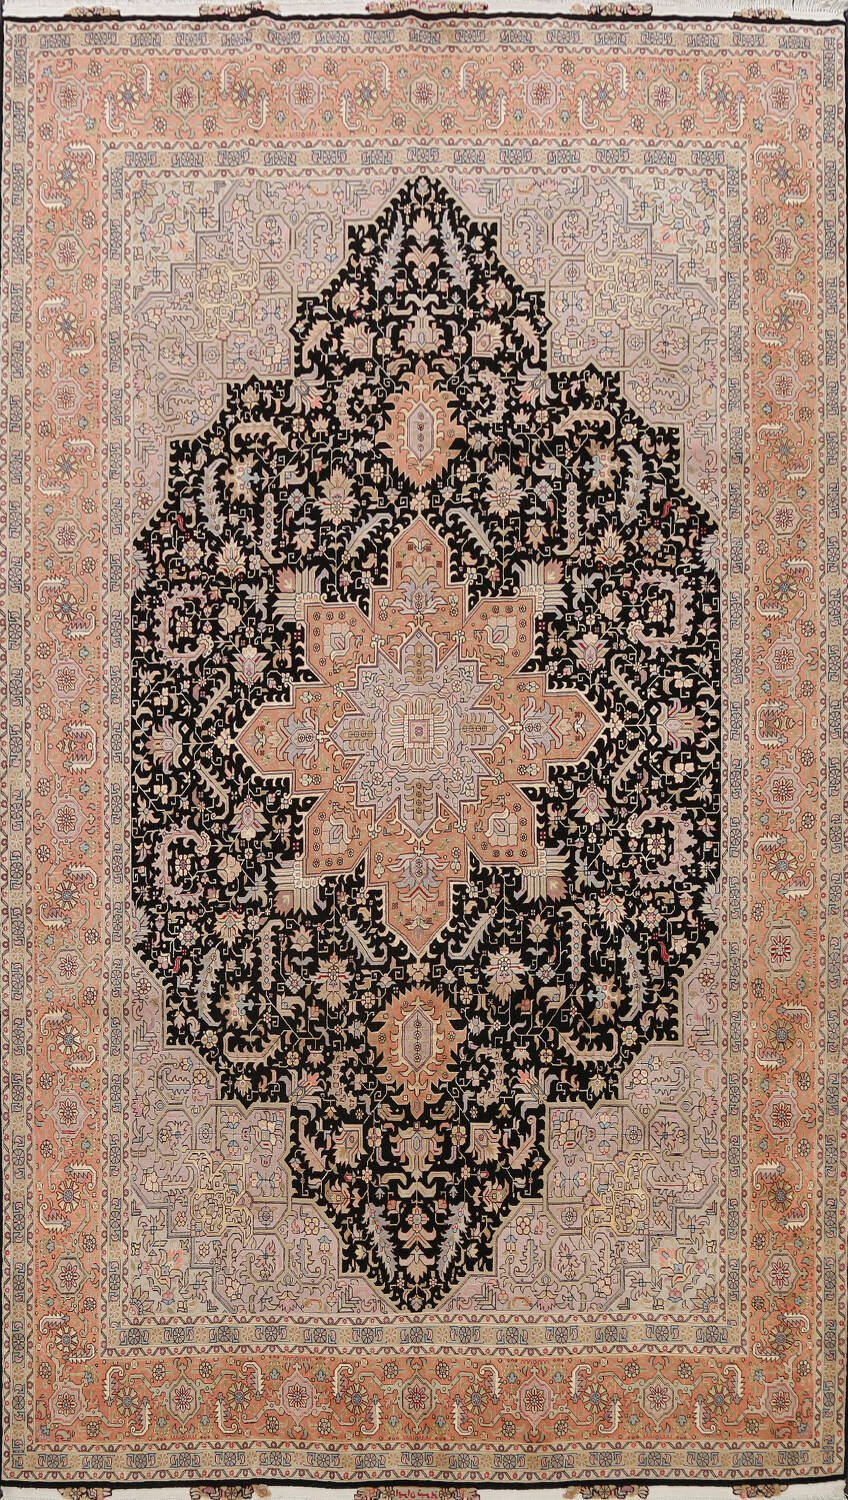 100% Vegetable Dye Tabriz Signed Persian Area Rug 8x12 image 1